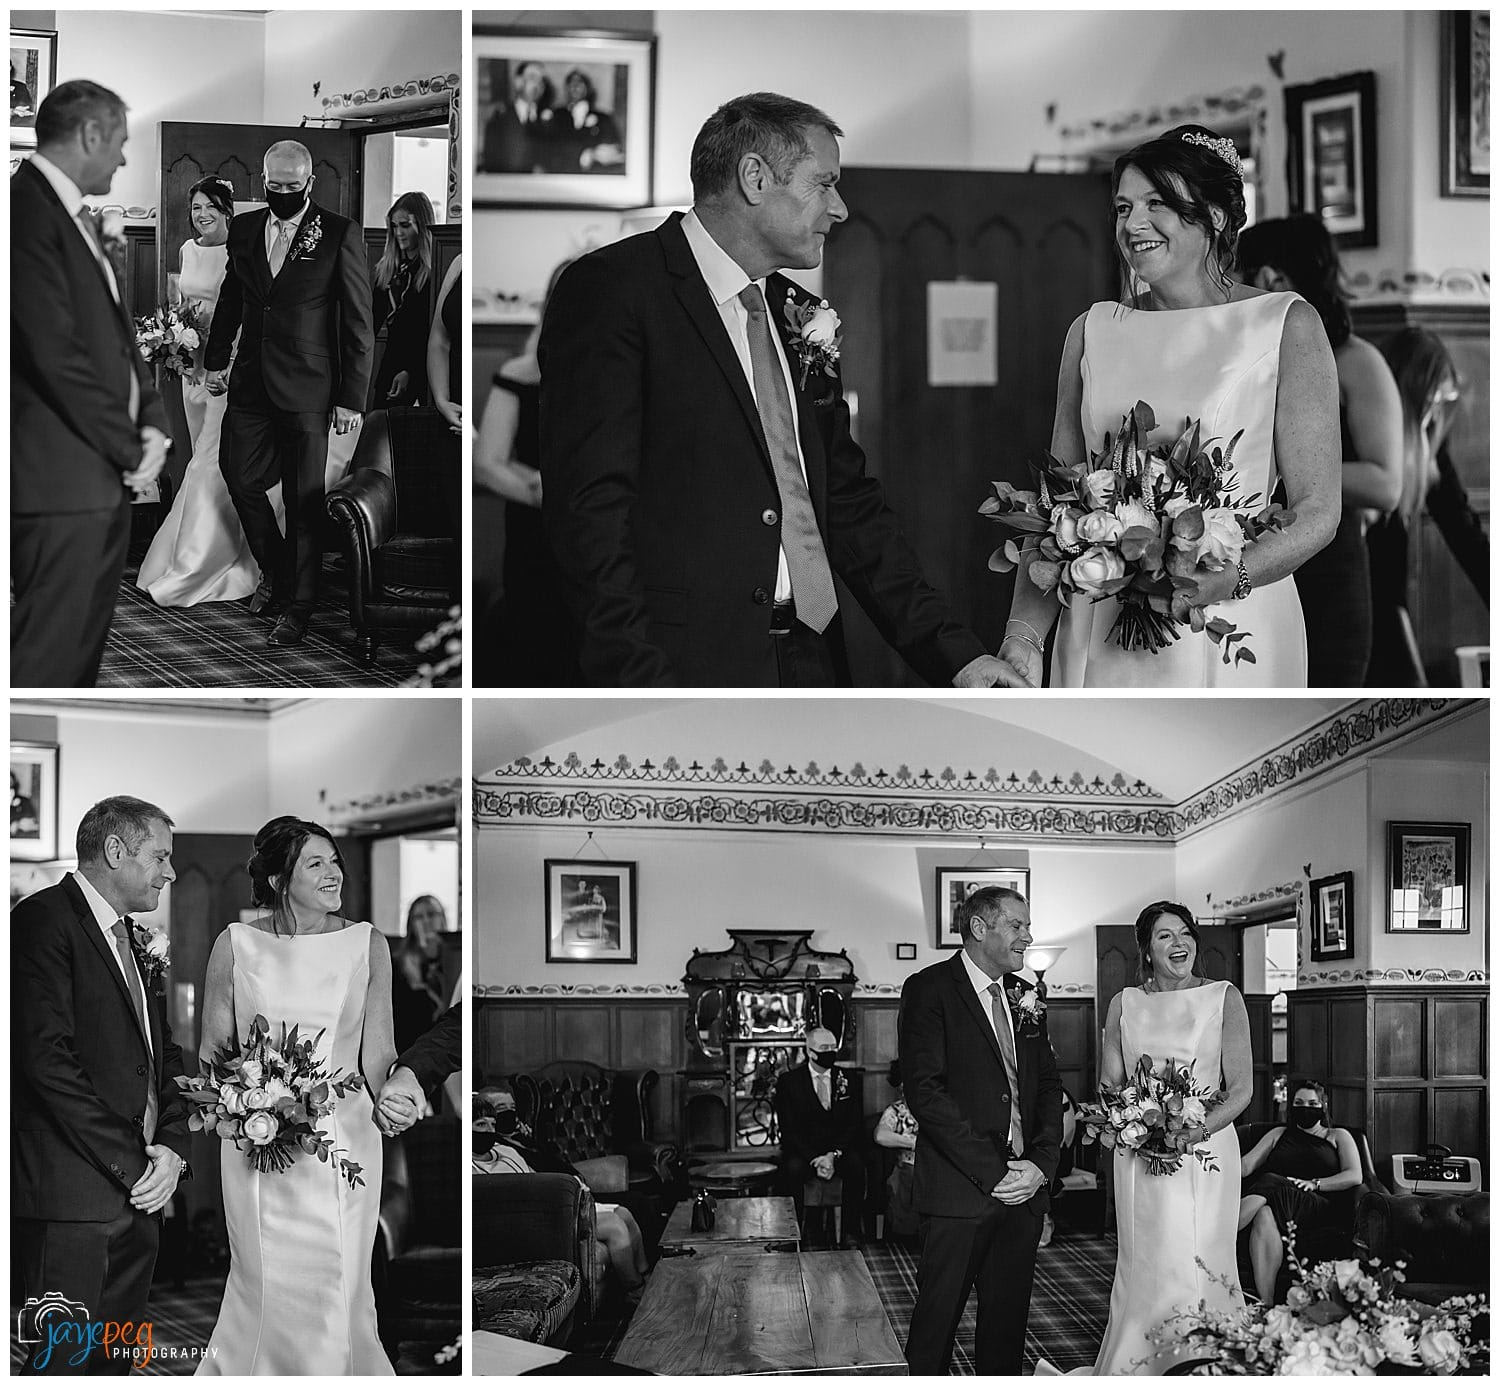 a wedding ceremony in the music room at broadoaks country house hotel